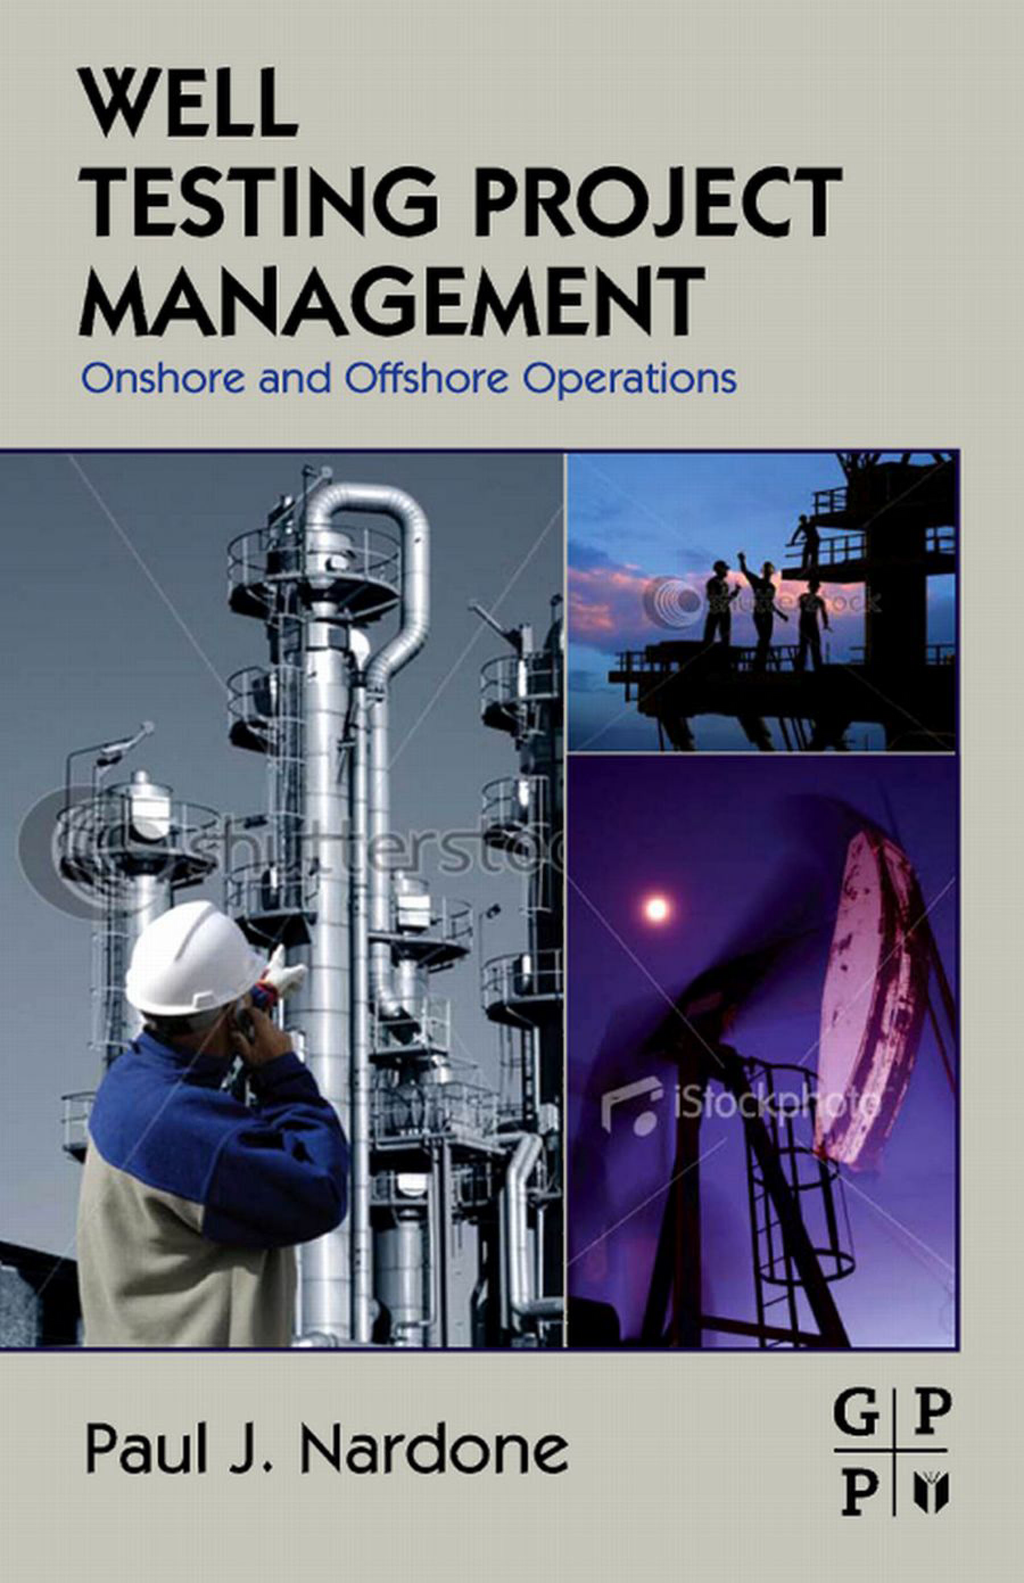 Well Testing Project Management Onshore and Offshore Operations